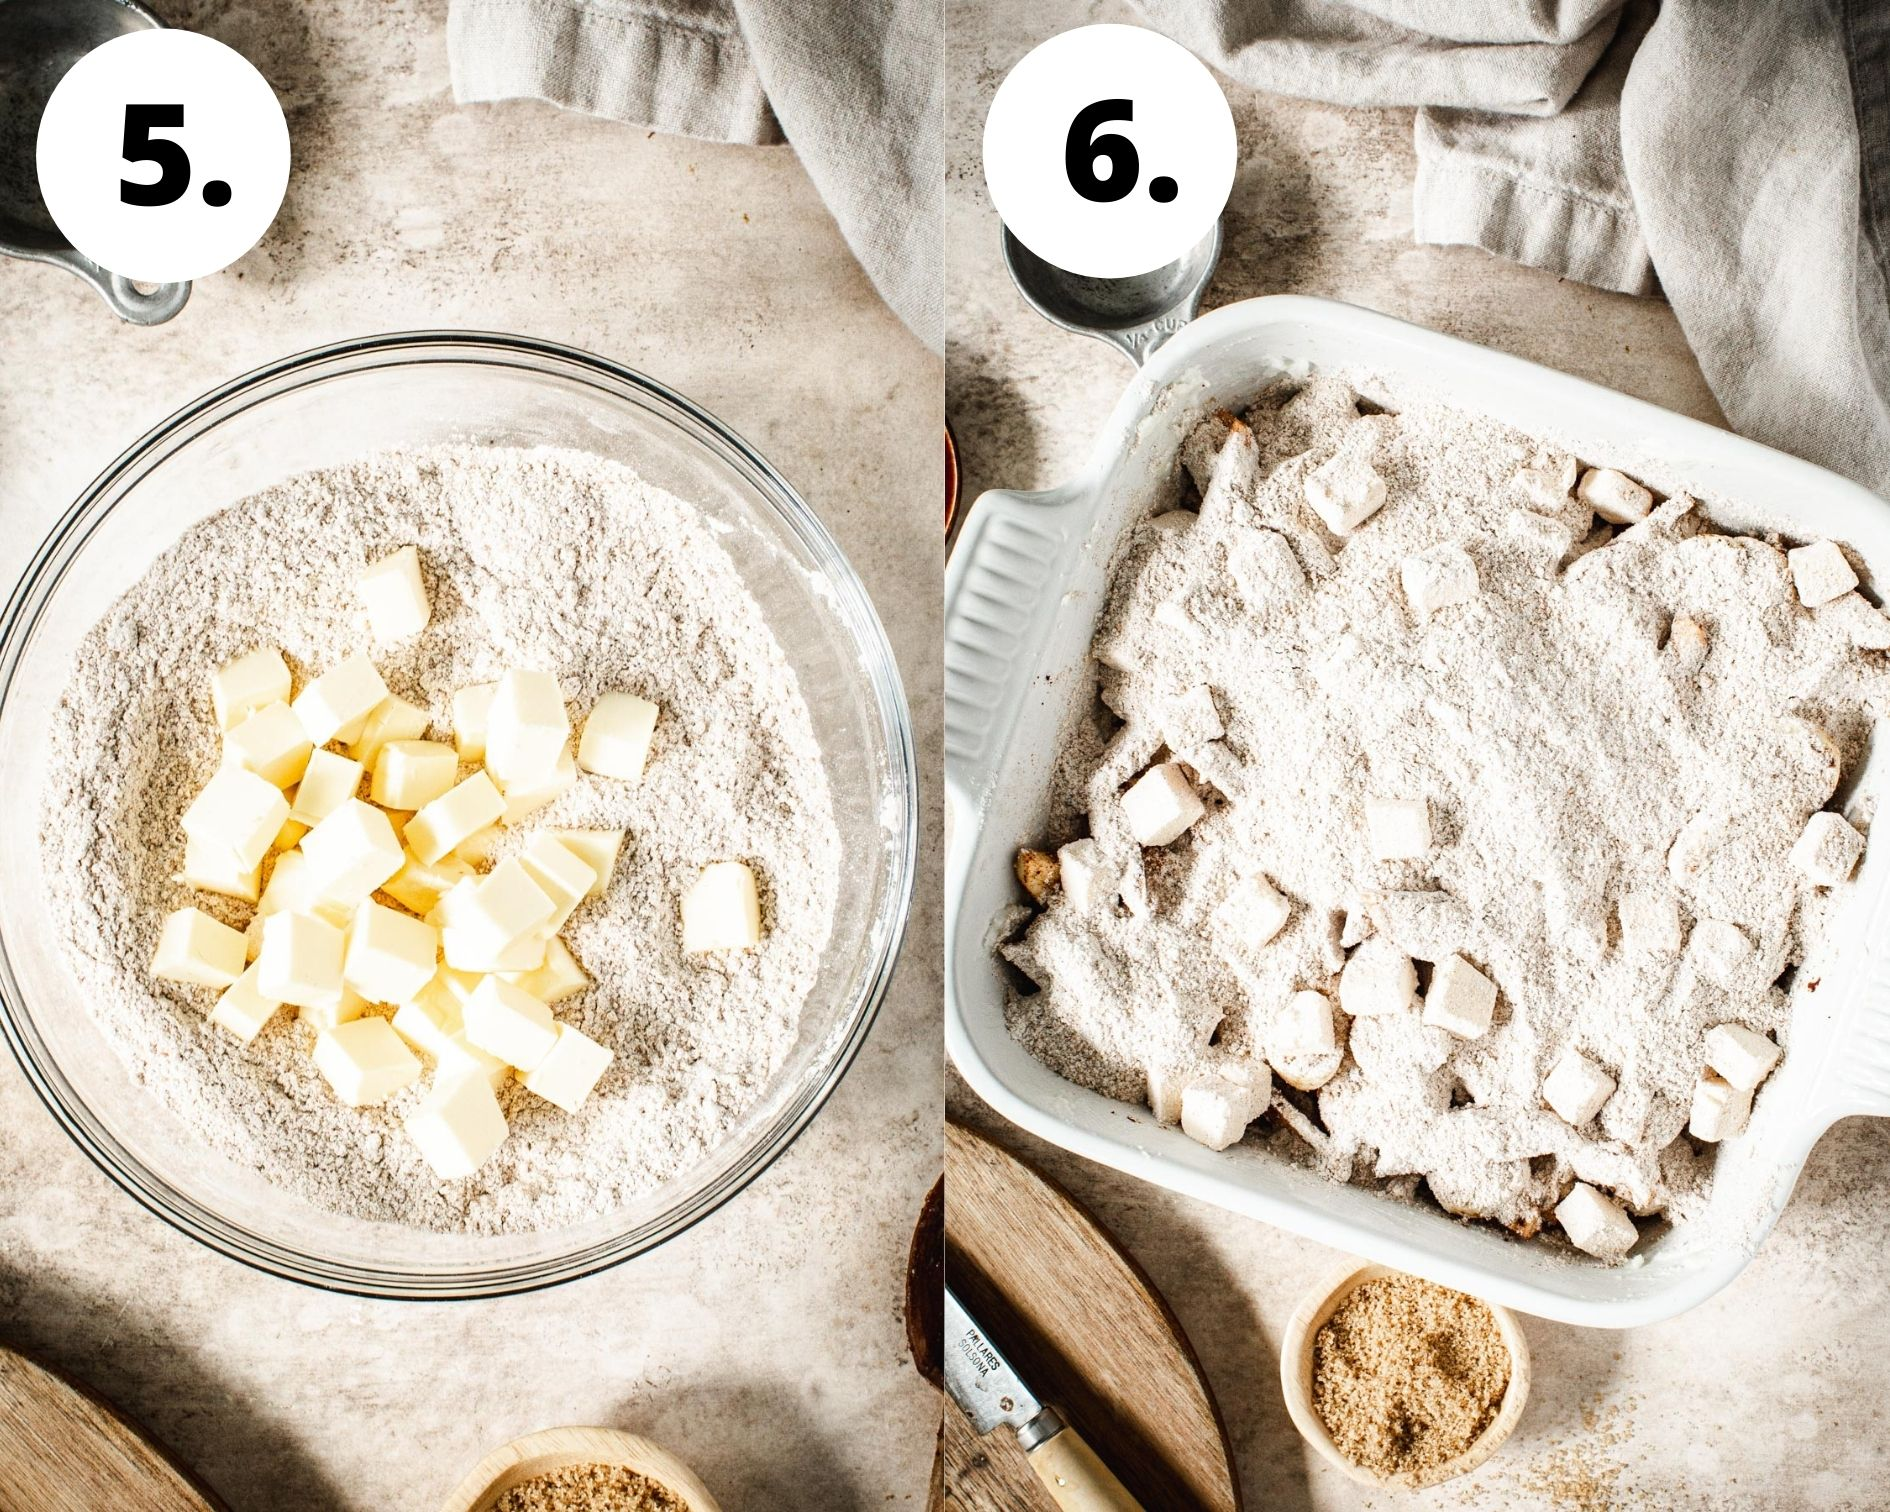 Baked apple crumble process steps 5 and 6.